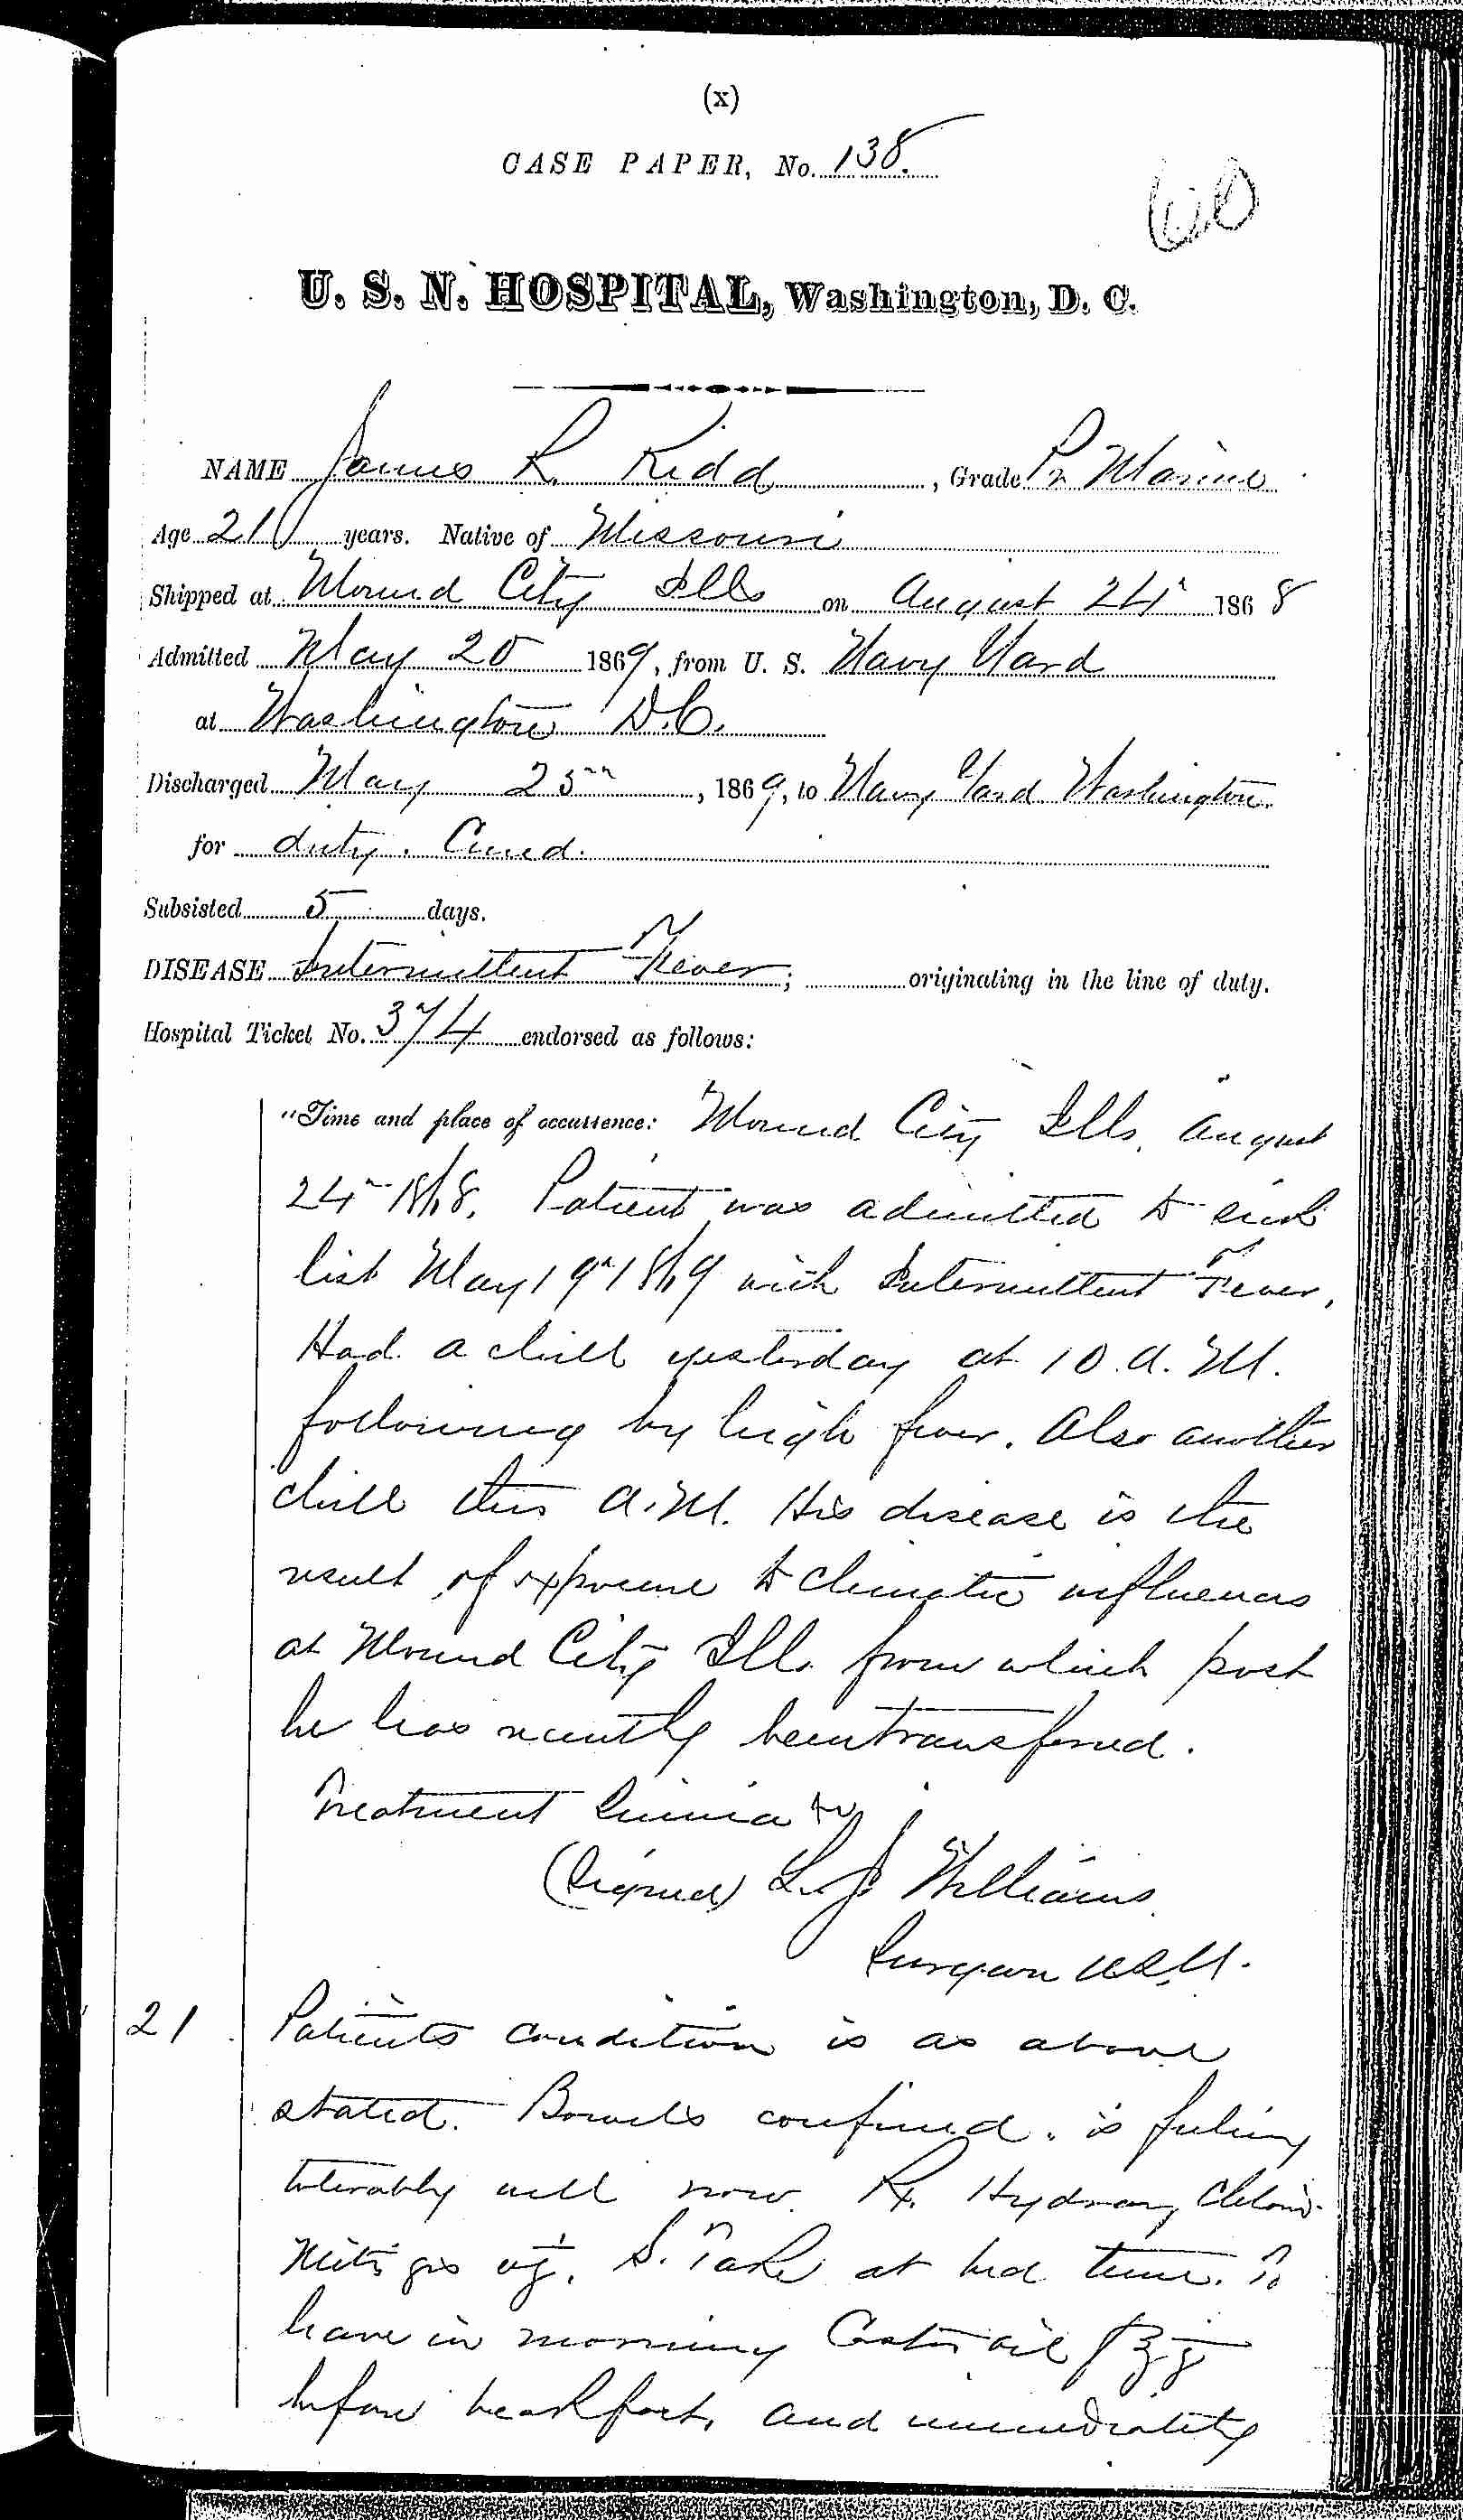 Entry for James R. Kidd (page 1 of 2) in the log Hospital Tickets and Case Papers - Naval Hospital - Washington, D.C. - 1868-69